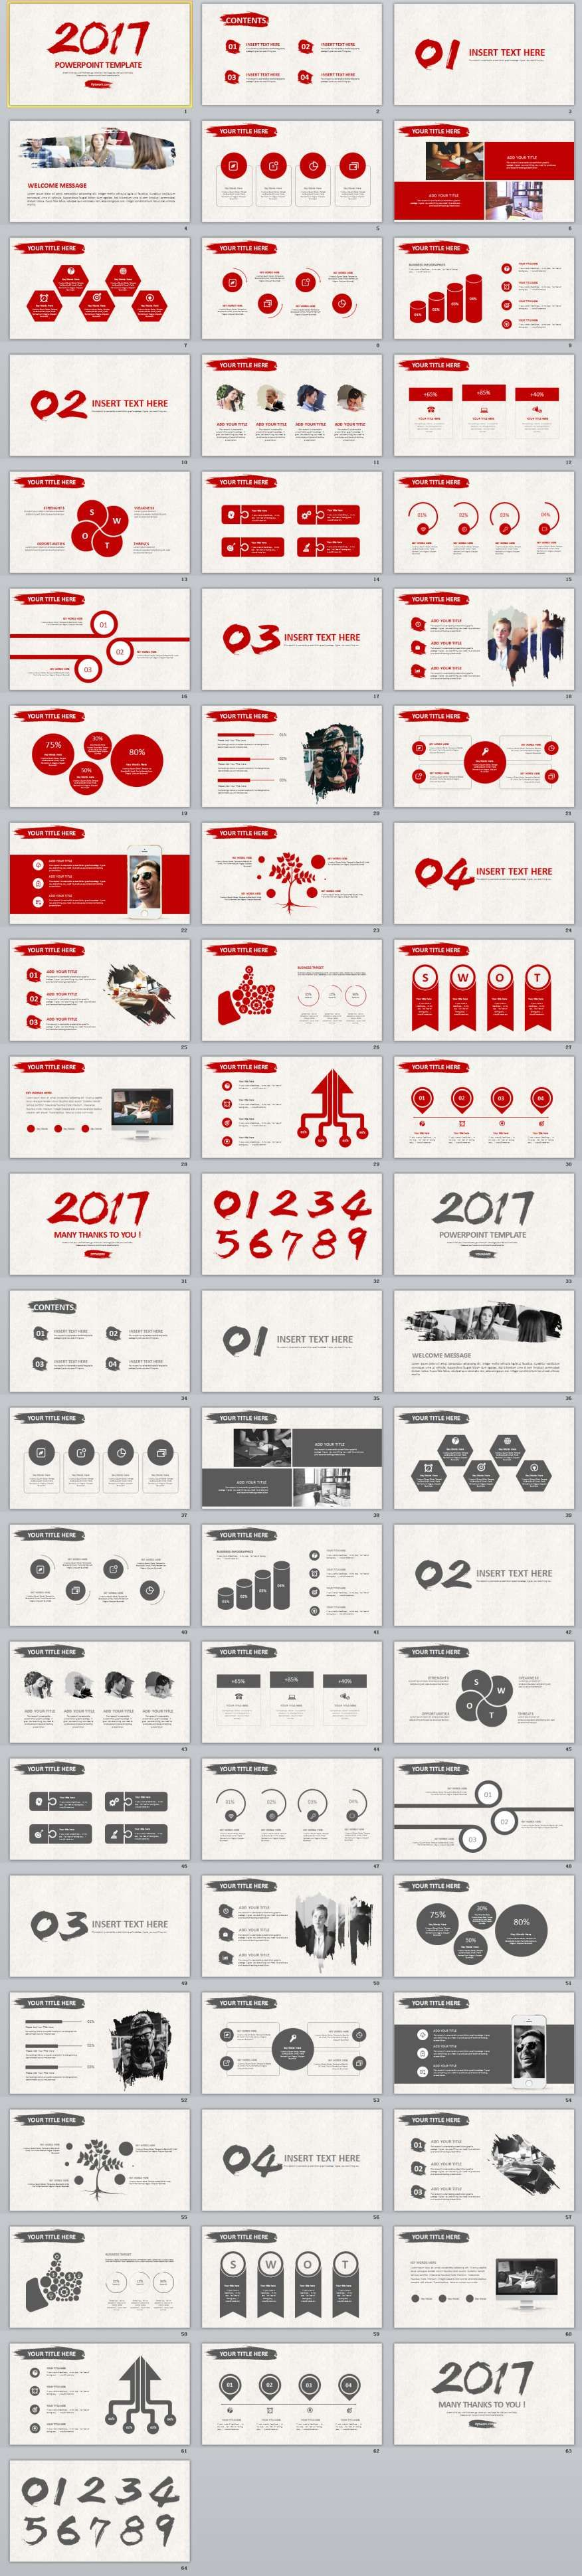 60+ red black annual report powerpoint templates 2 in 1 | 2018, Modern powerpoint